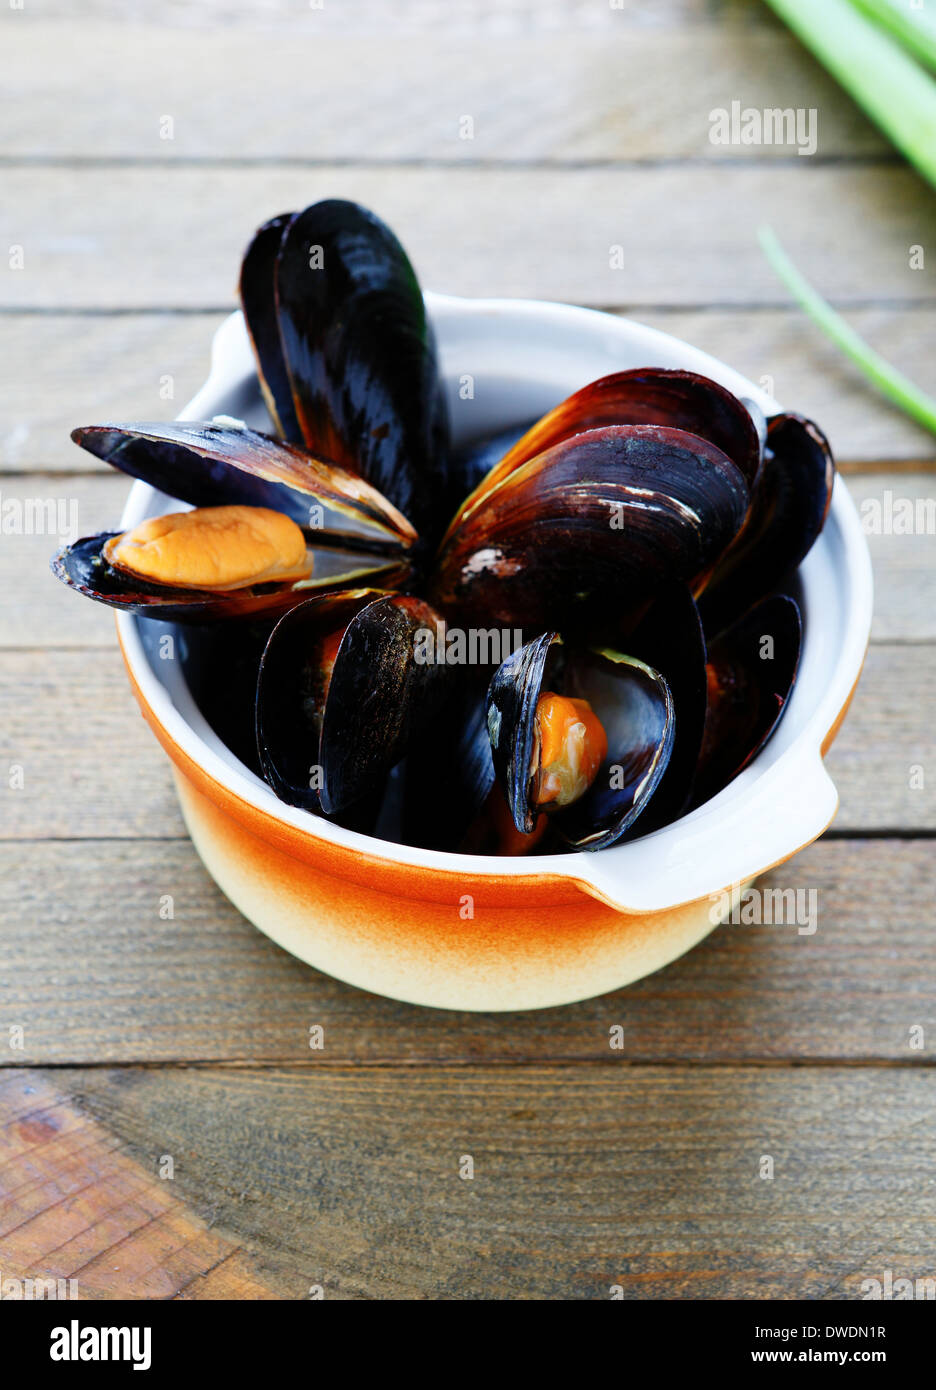 mussels cooked in a saucepan, food closeup Stock Photo